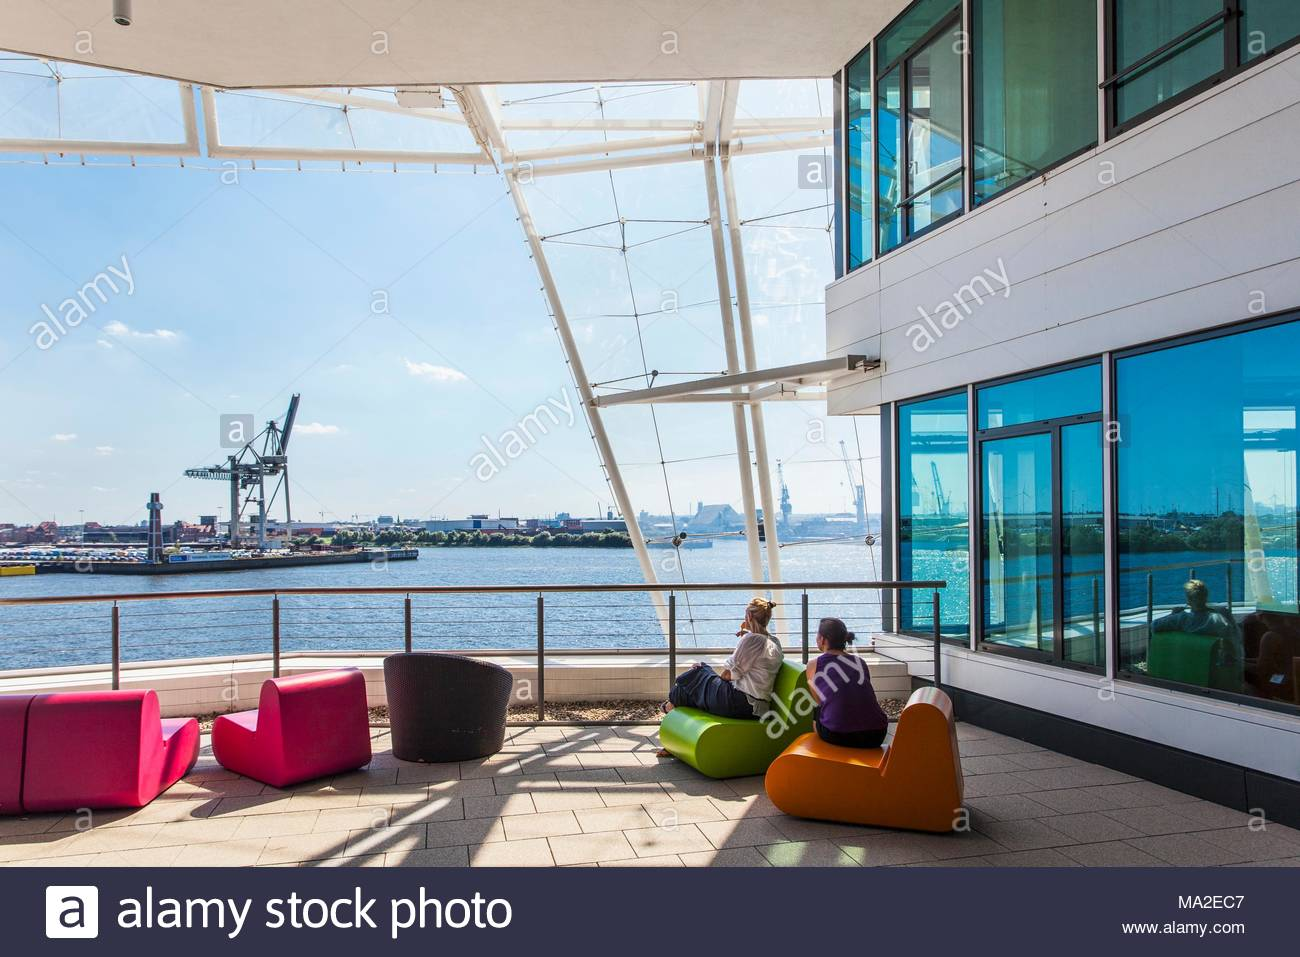 Hafencity: The Unilever building with a view of the river Elbe and the harbour - Stock Image